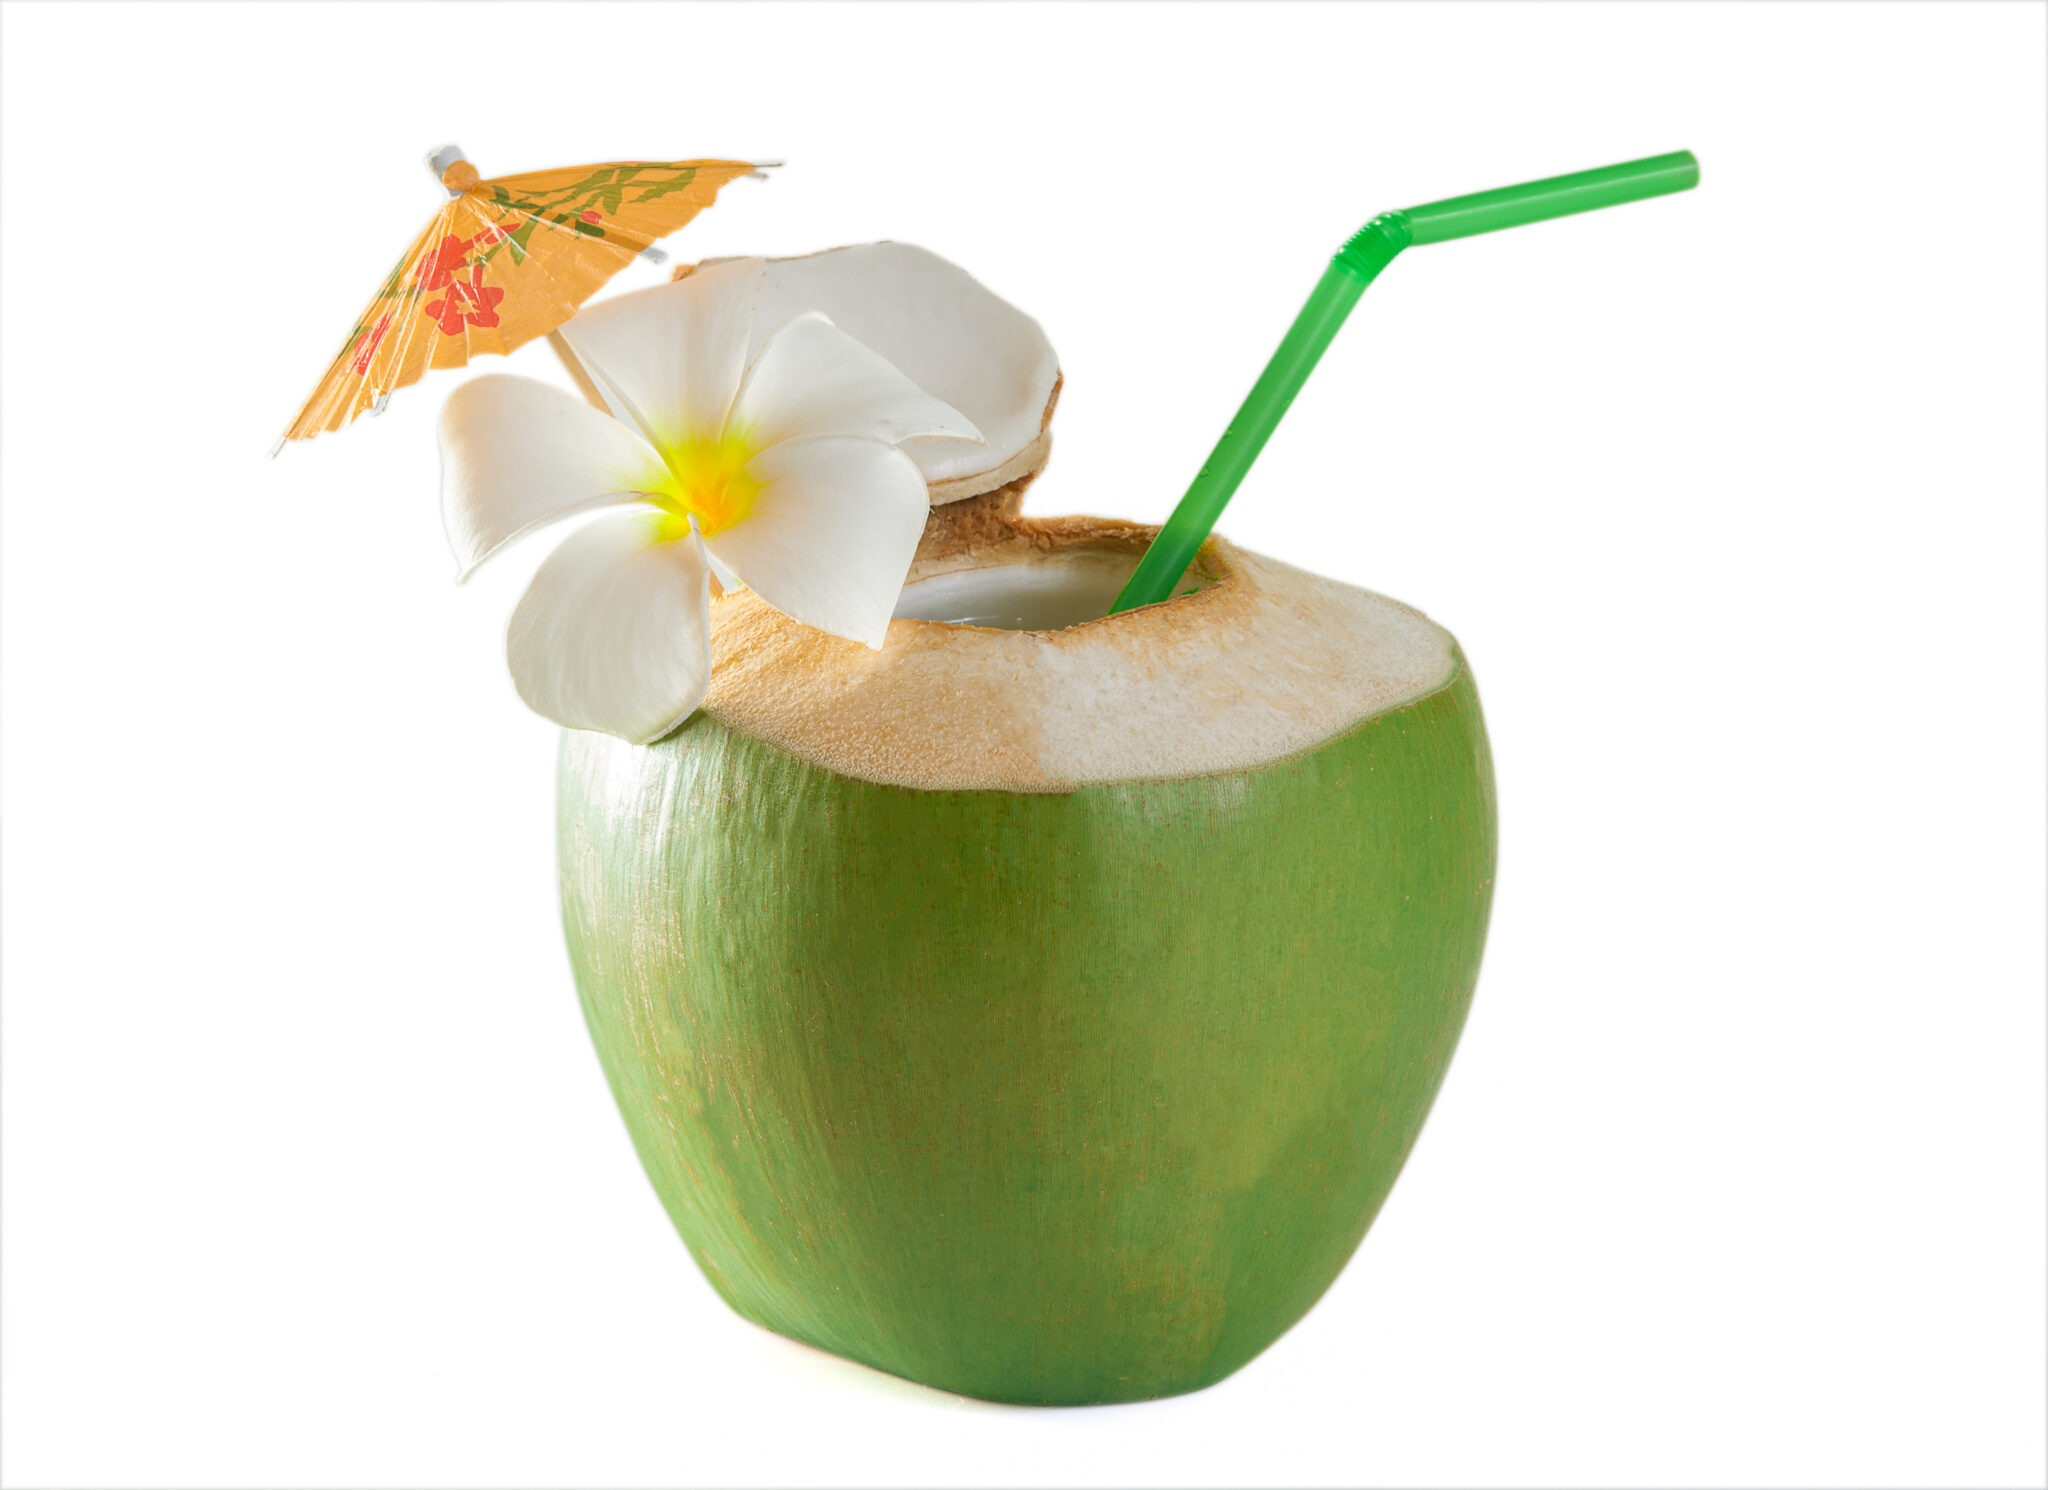 coconut water: 18 health benefits and known side effects